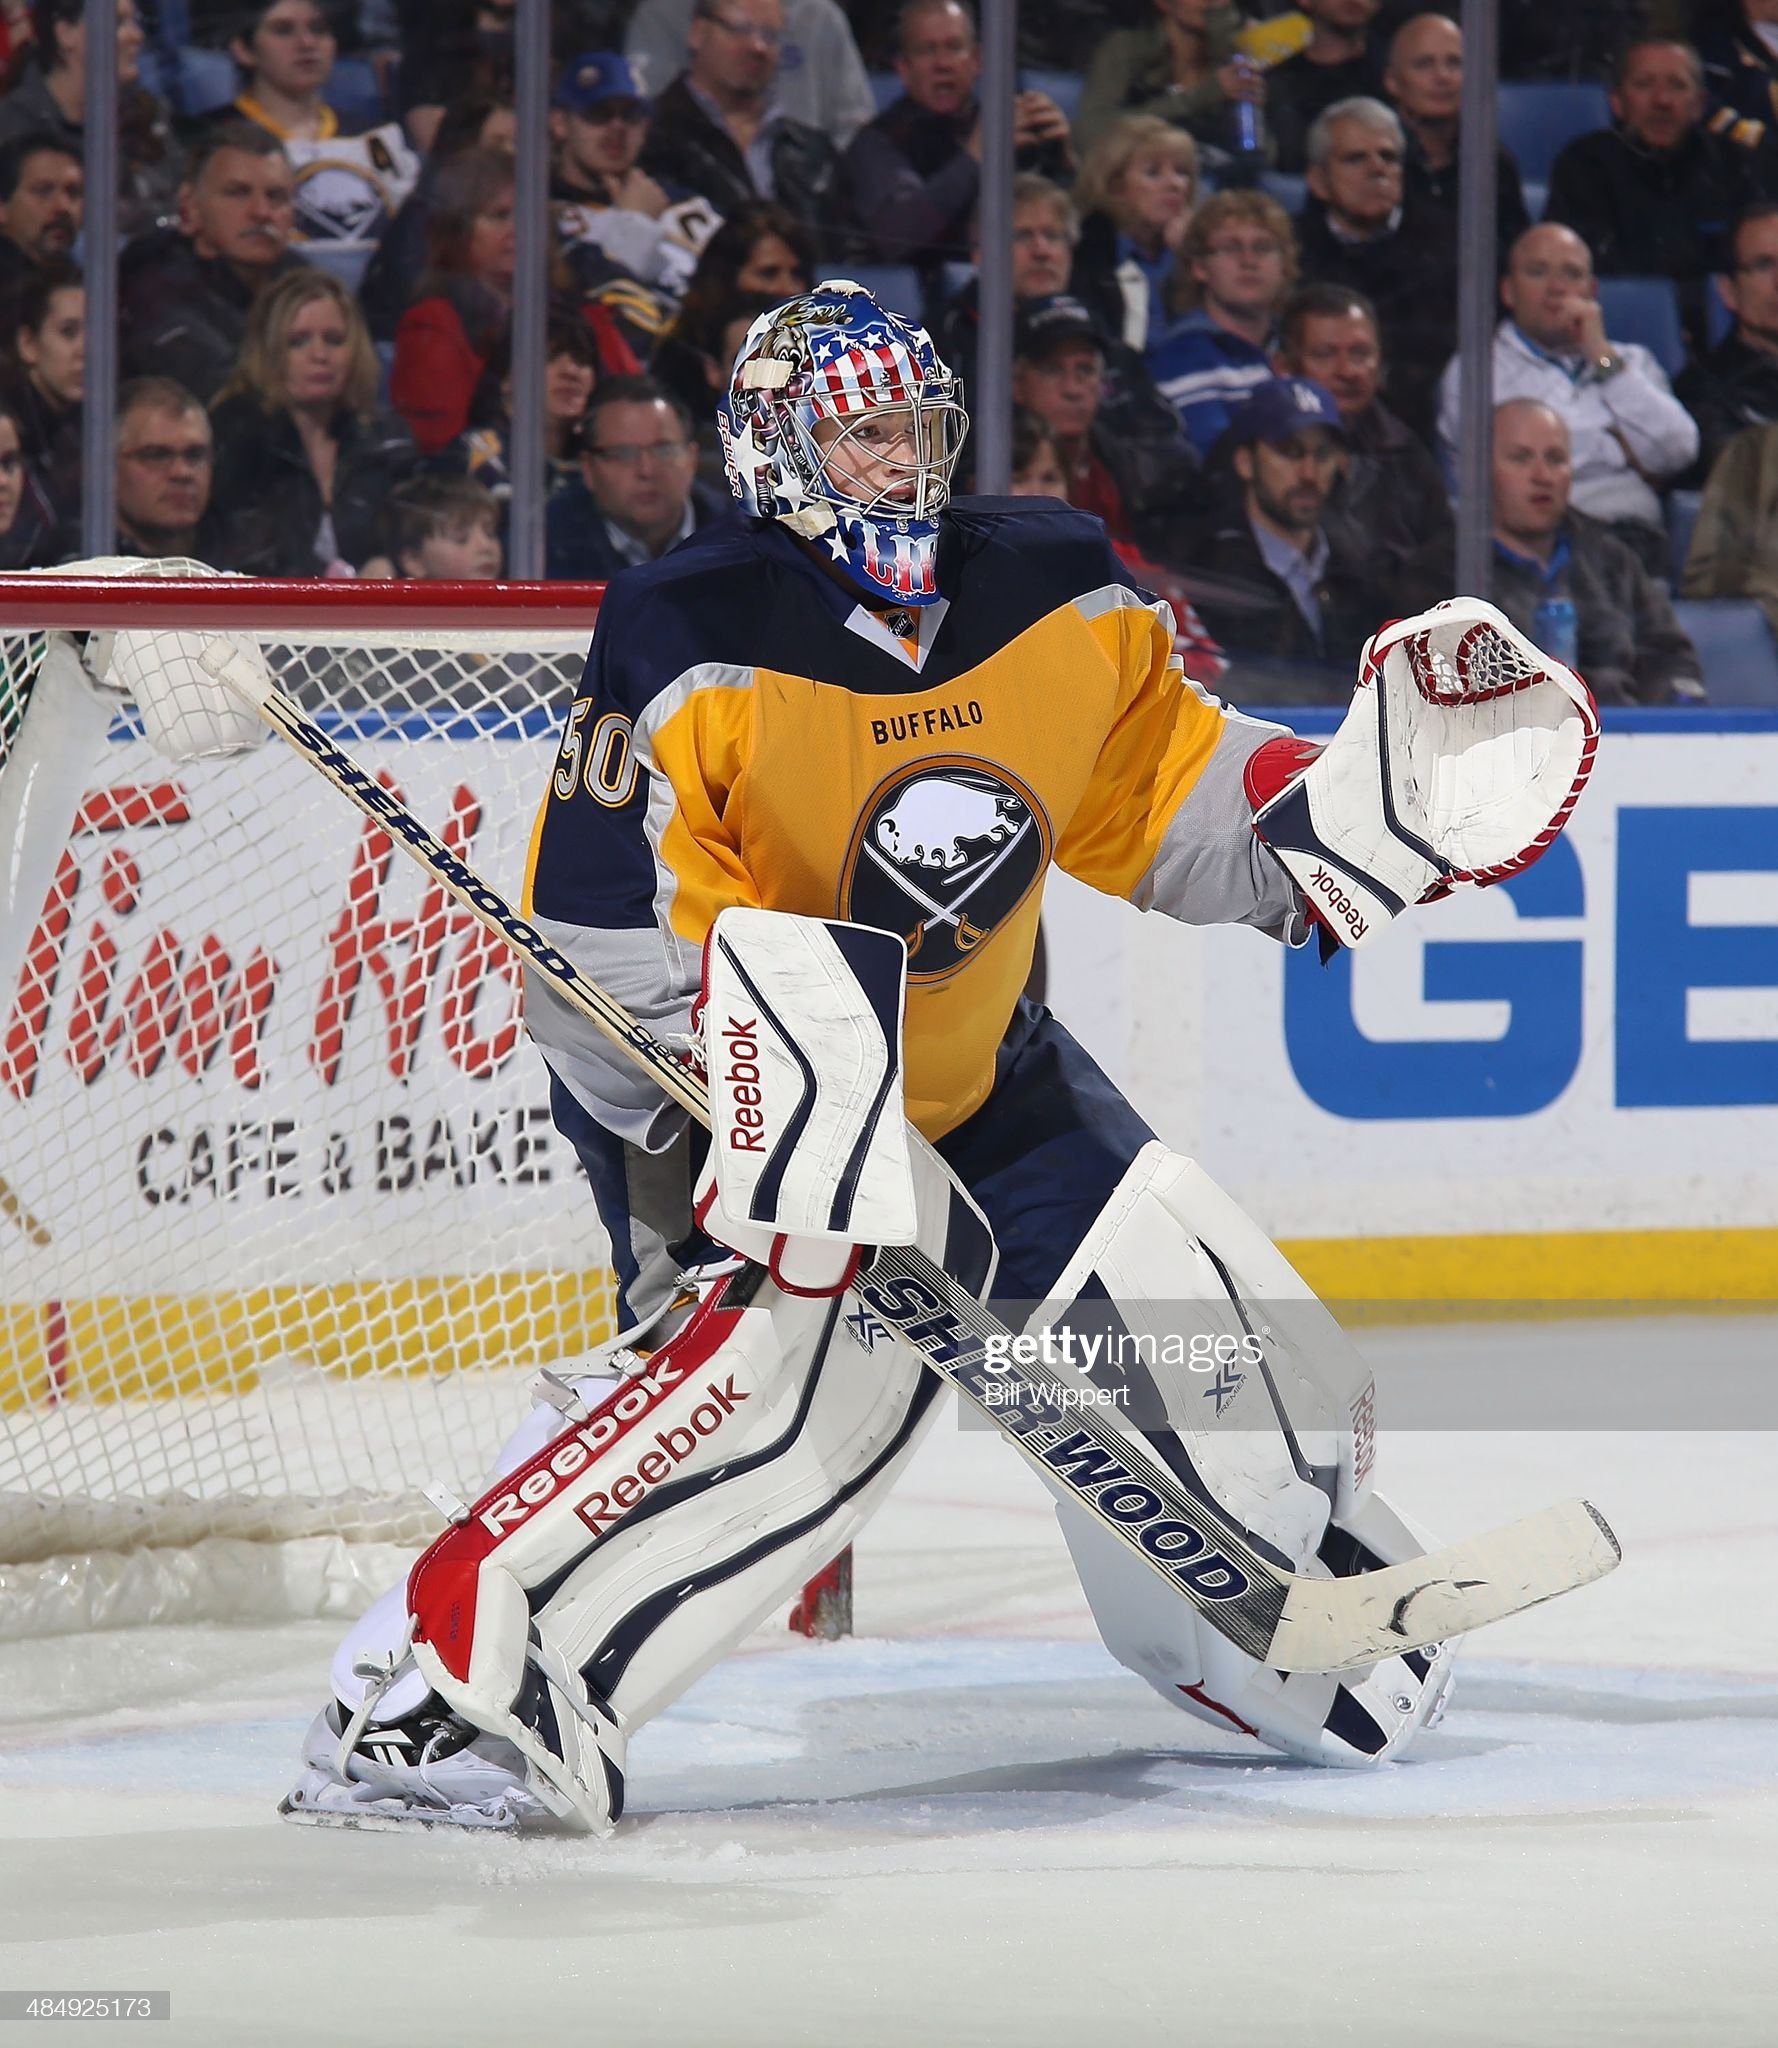 nathan-lieuwen-of-the-buffalo-sabres-ten